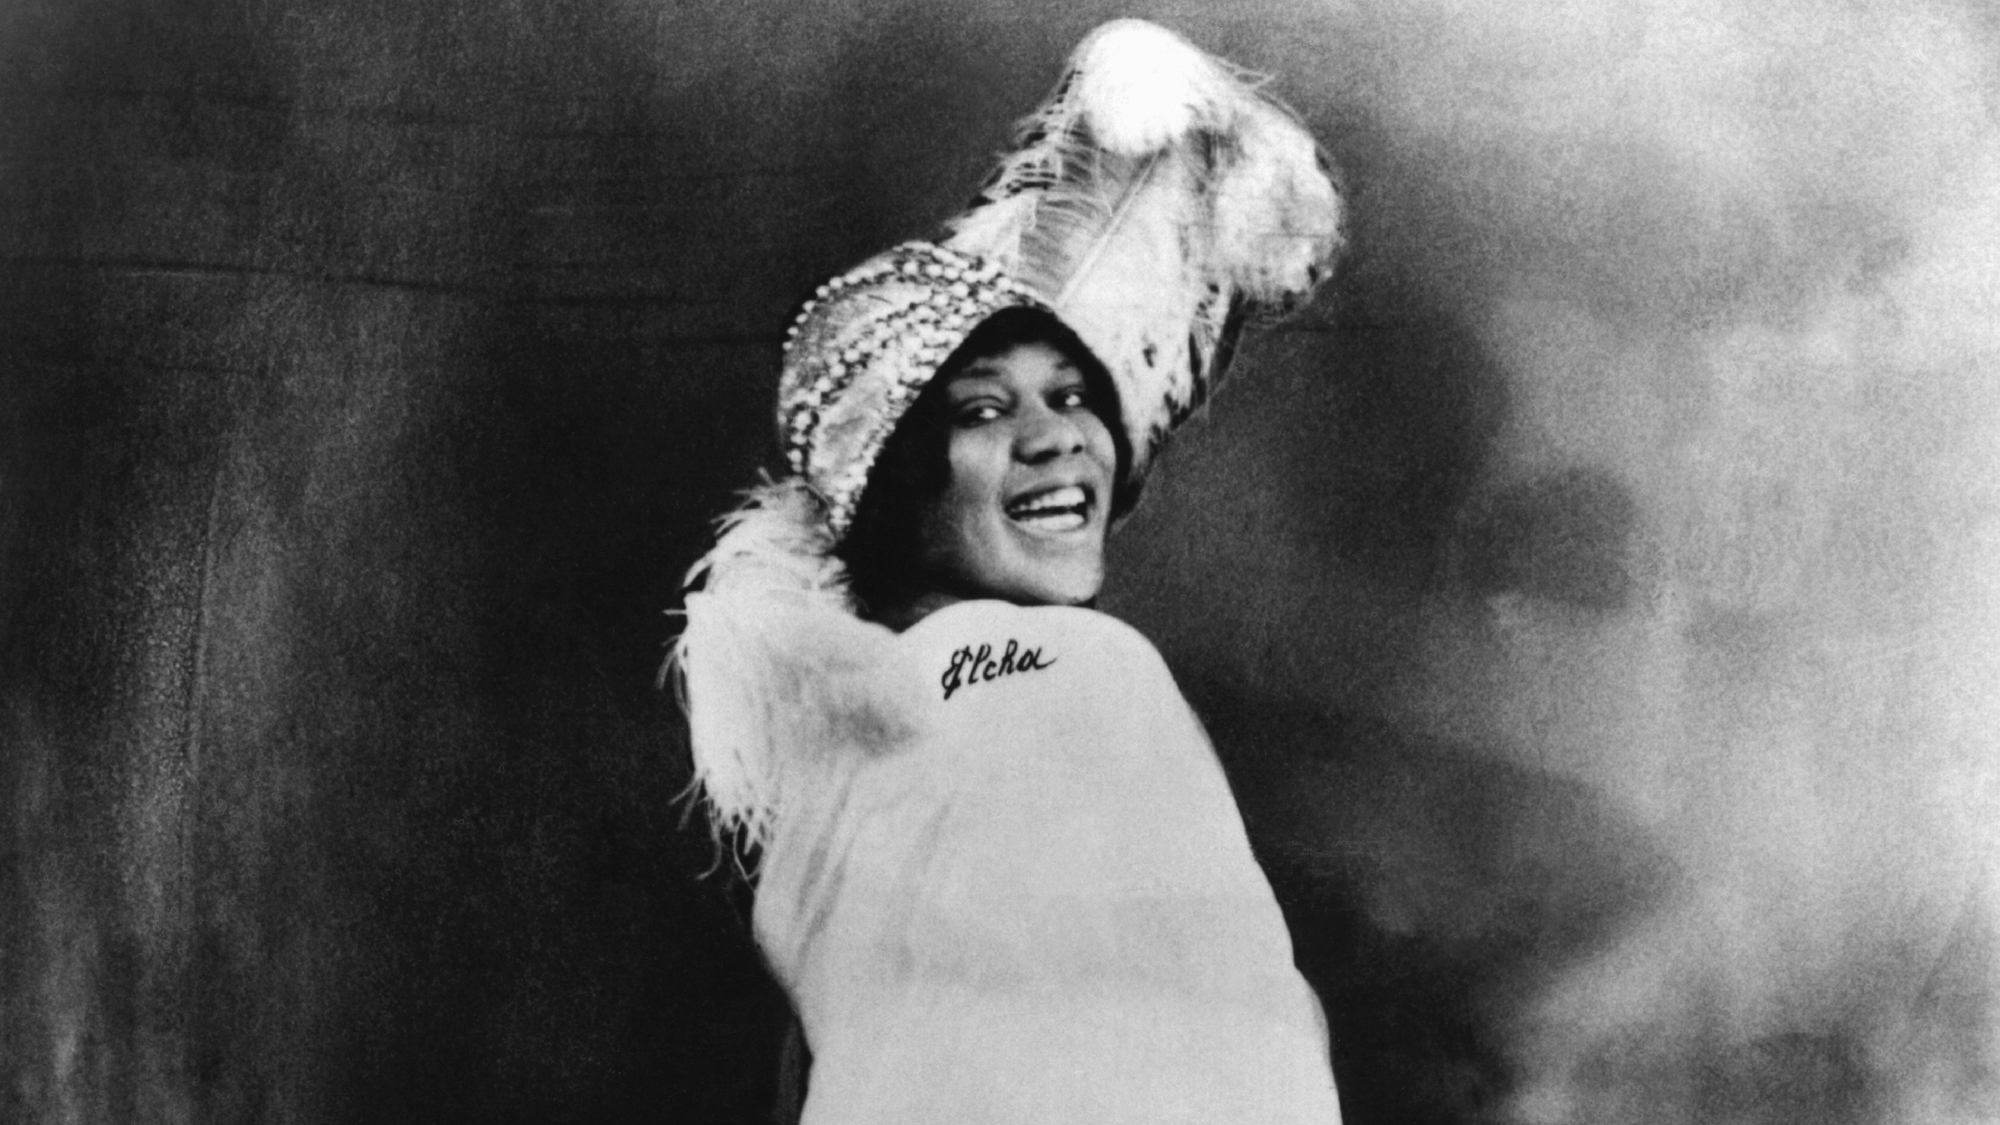 The forgotten female soul singers who changed the music world